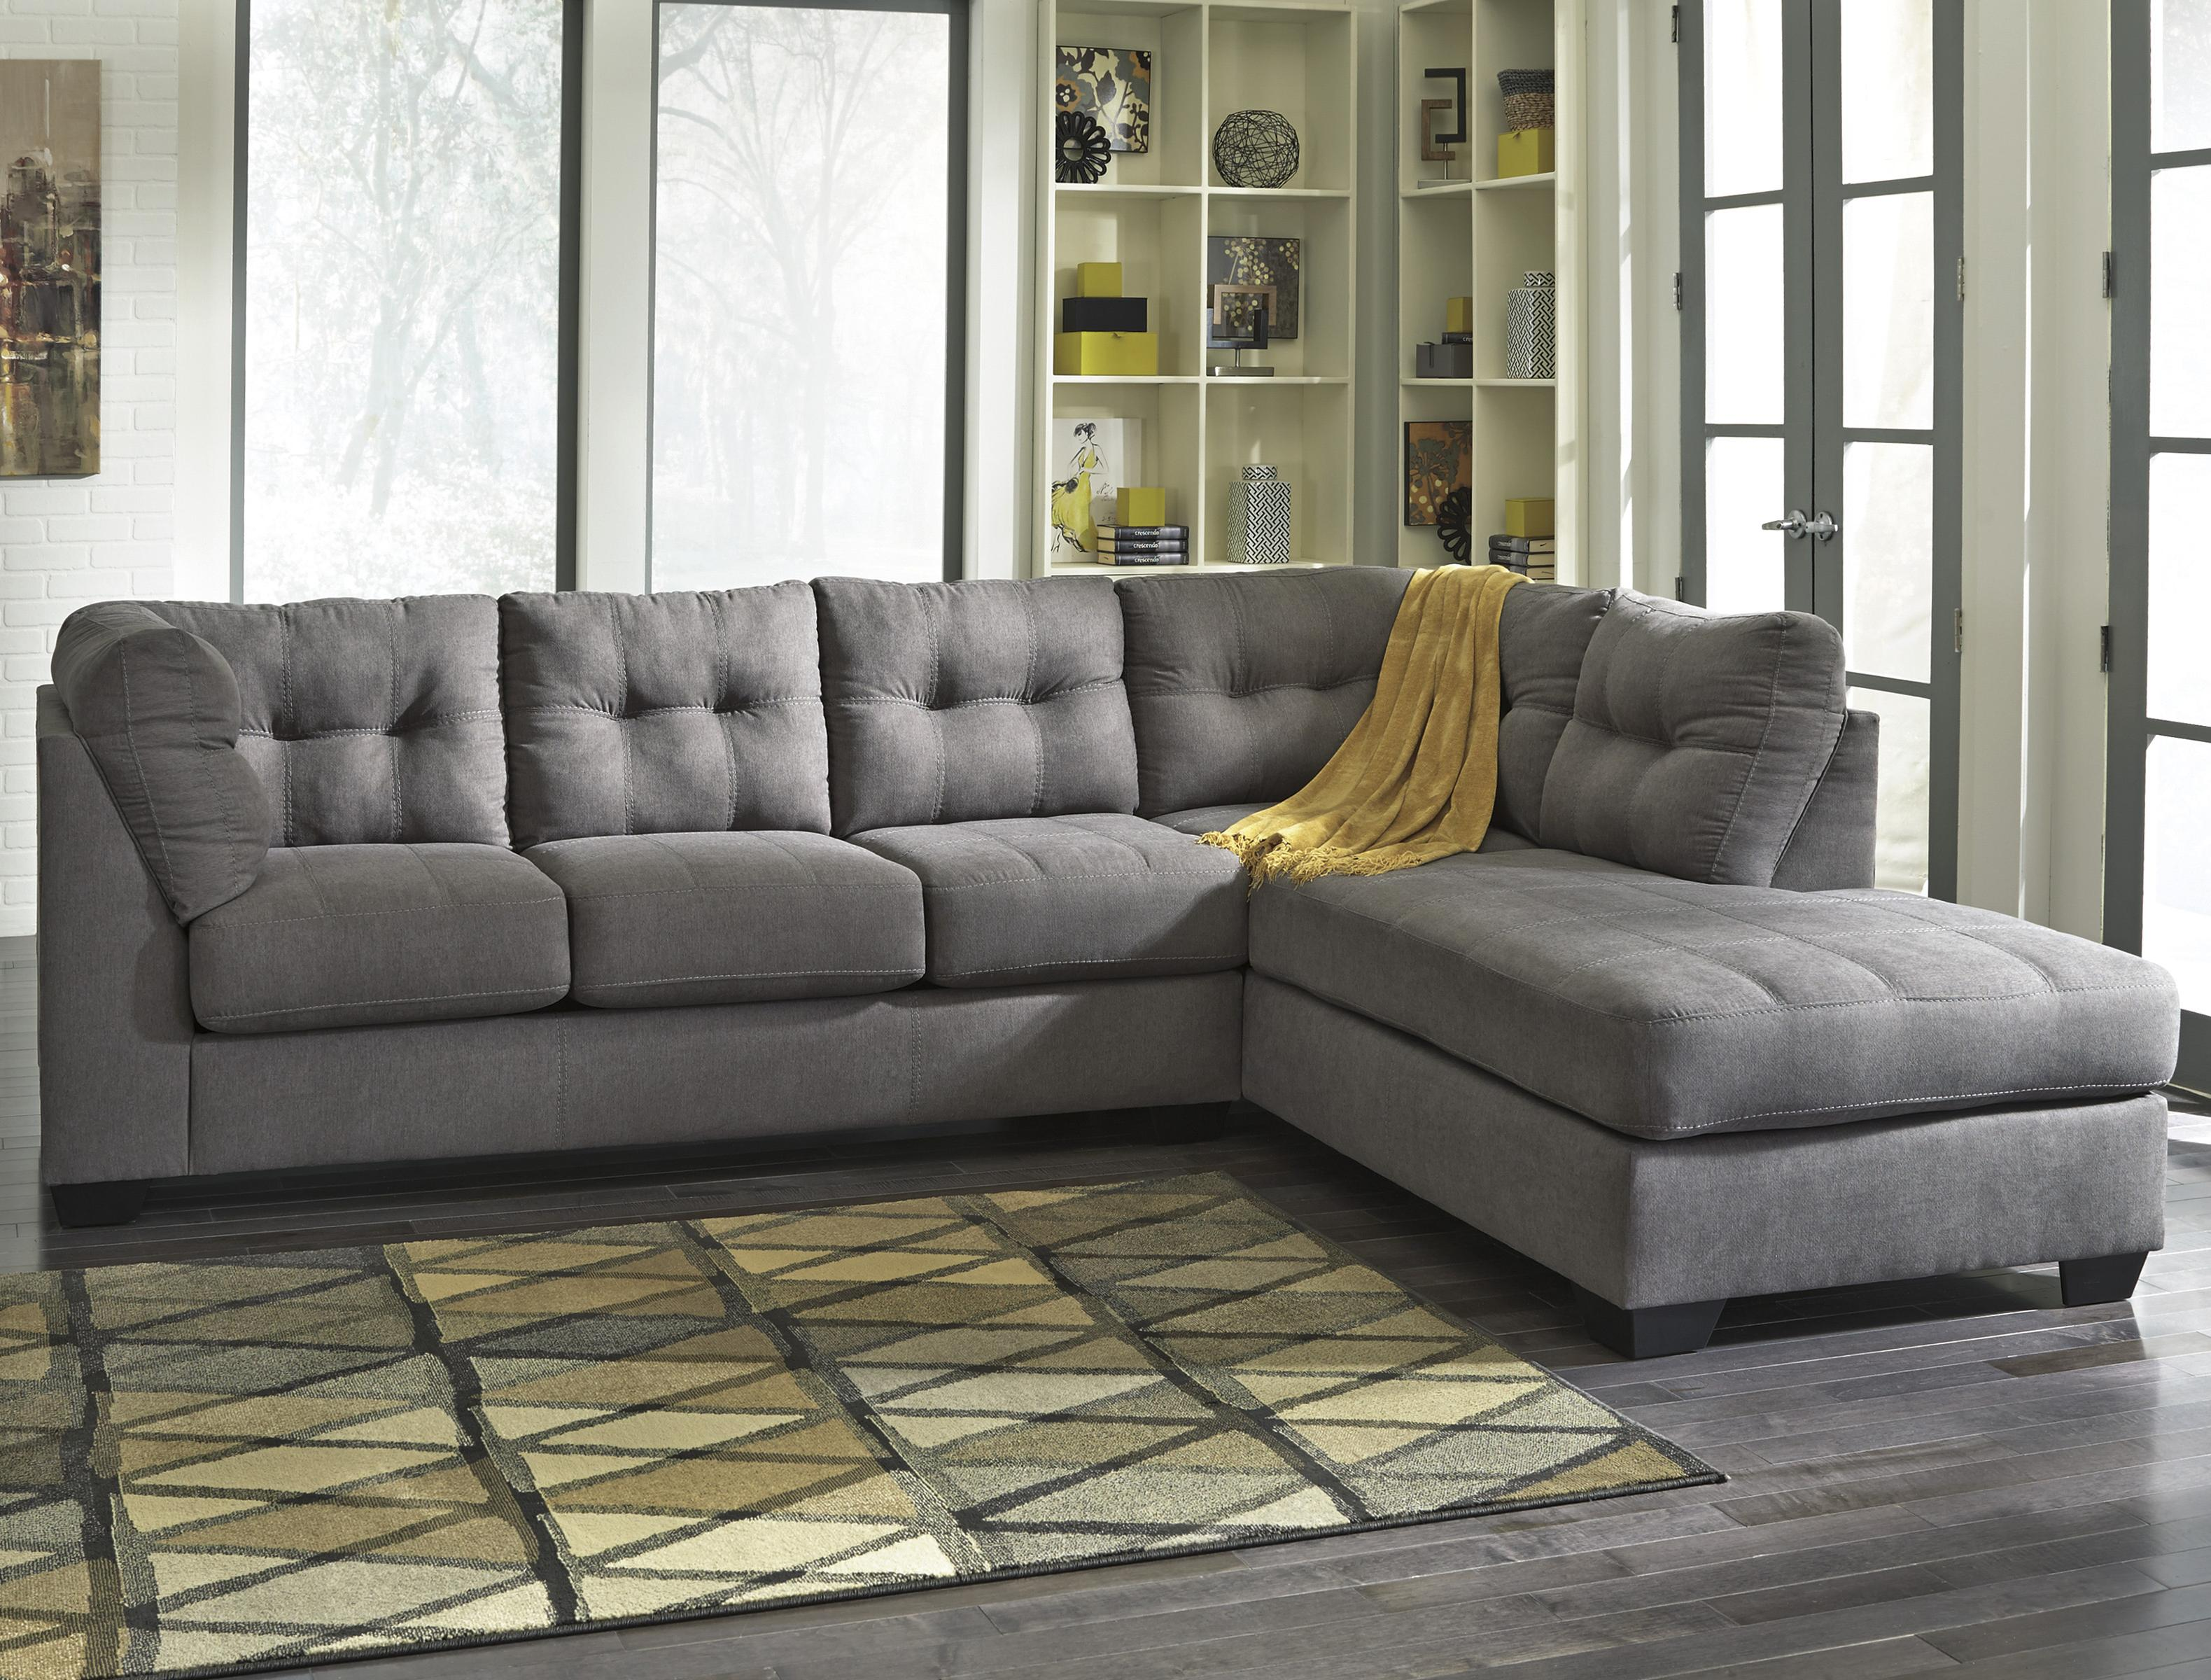 Maier - Charcoal 2-Piece Sectional w/ Sleeper Sofa & Chaise by Benchcraft at Beck's Furniture